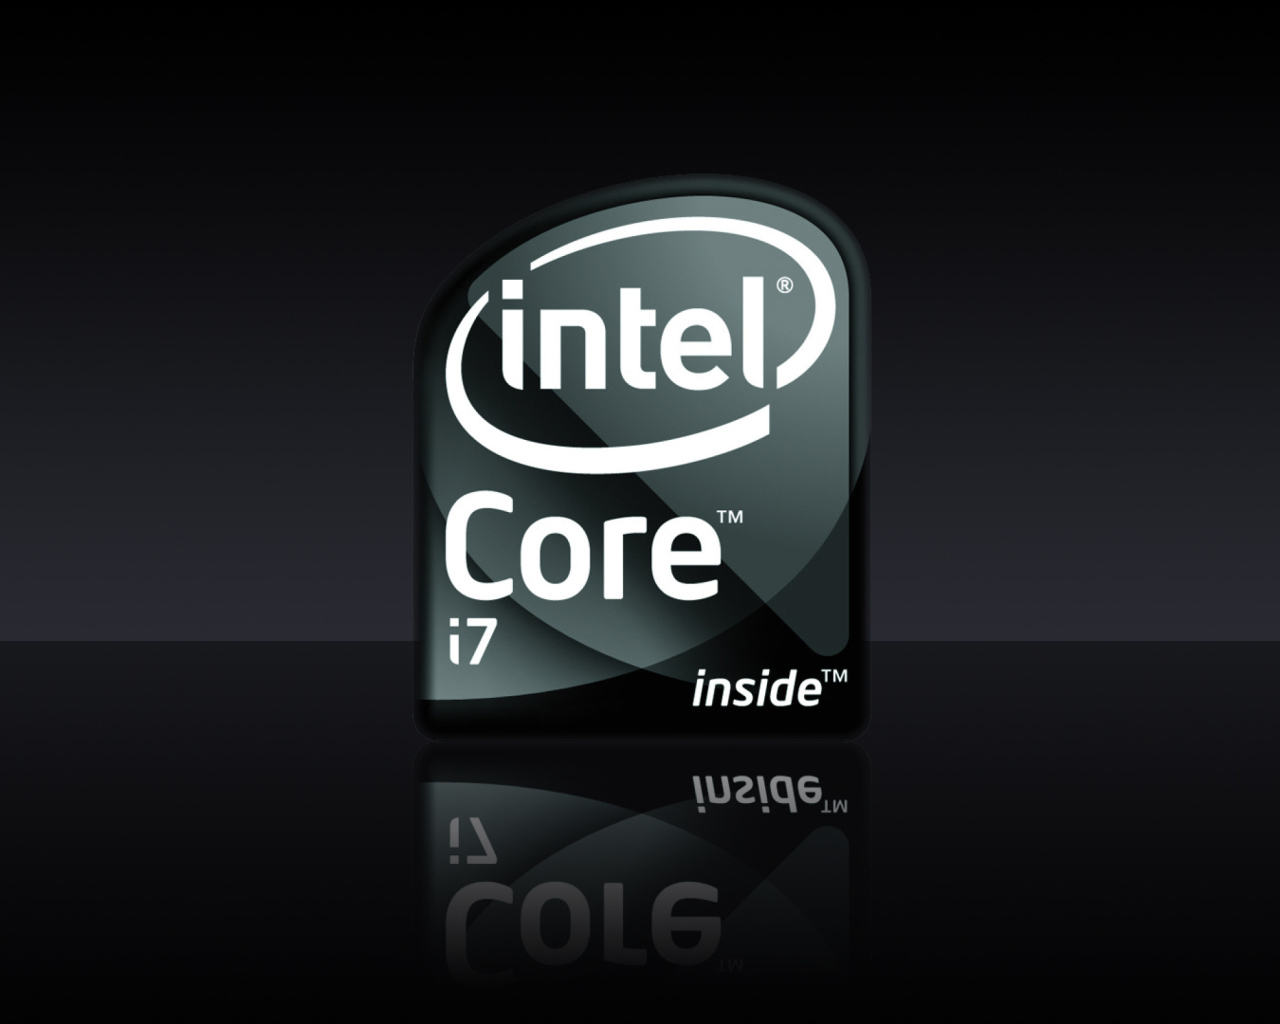 Intel Core I7 wallpaper 1280x1024